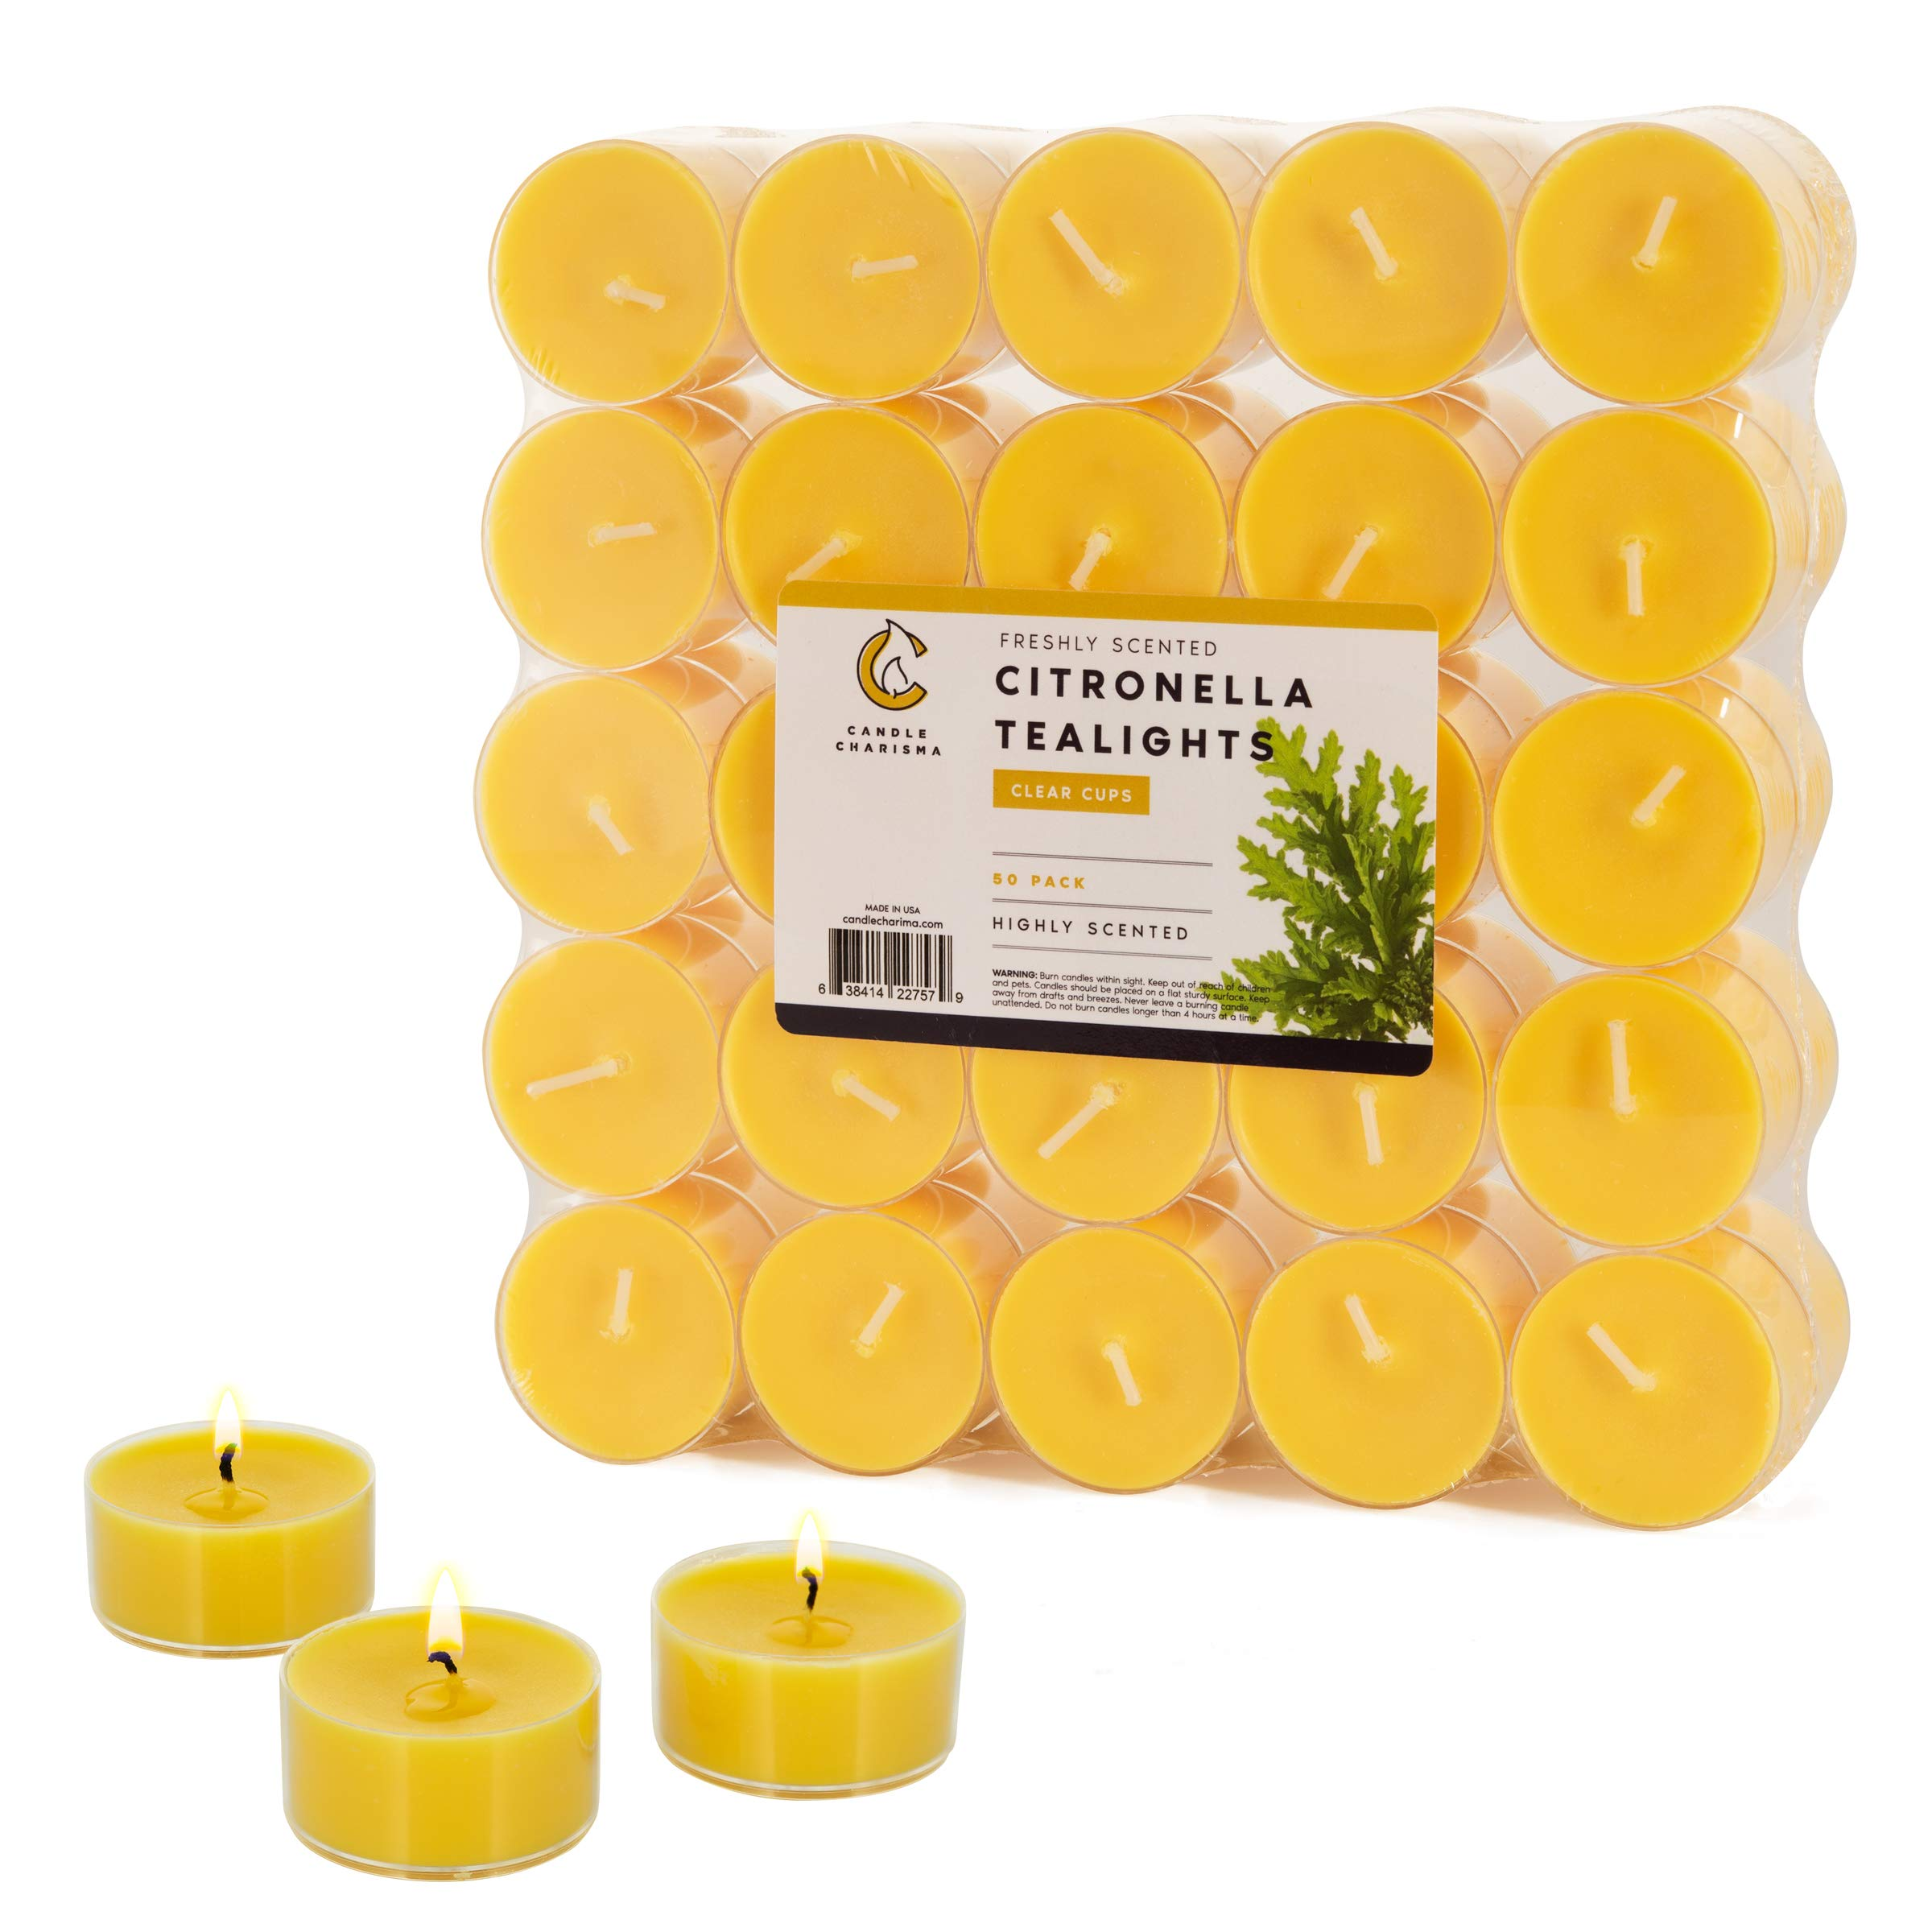 Citronella Tea Light Candles Fancy in Clear Cups 5 Hour Burn Time Set of 50 Indoor and Outdoor Made in USA